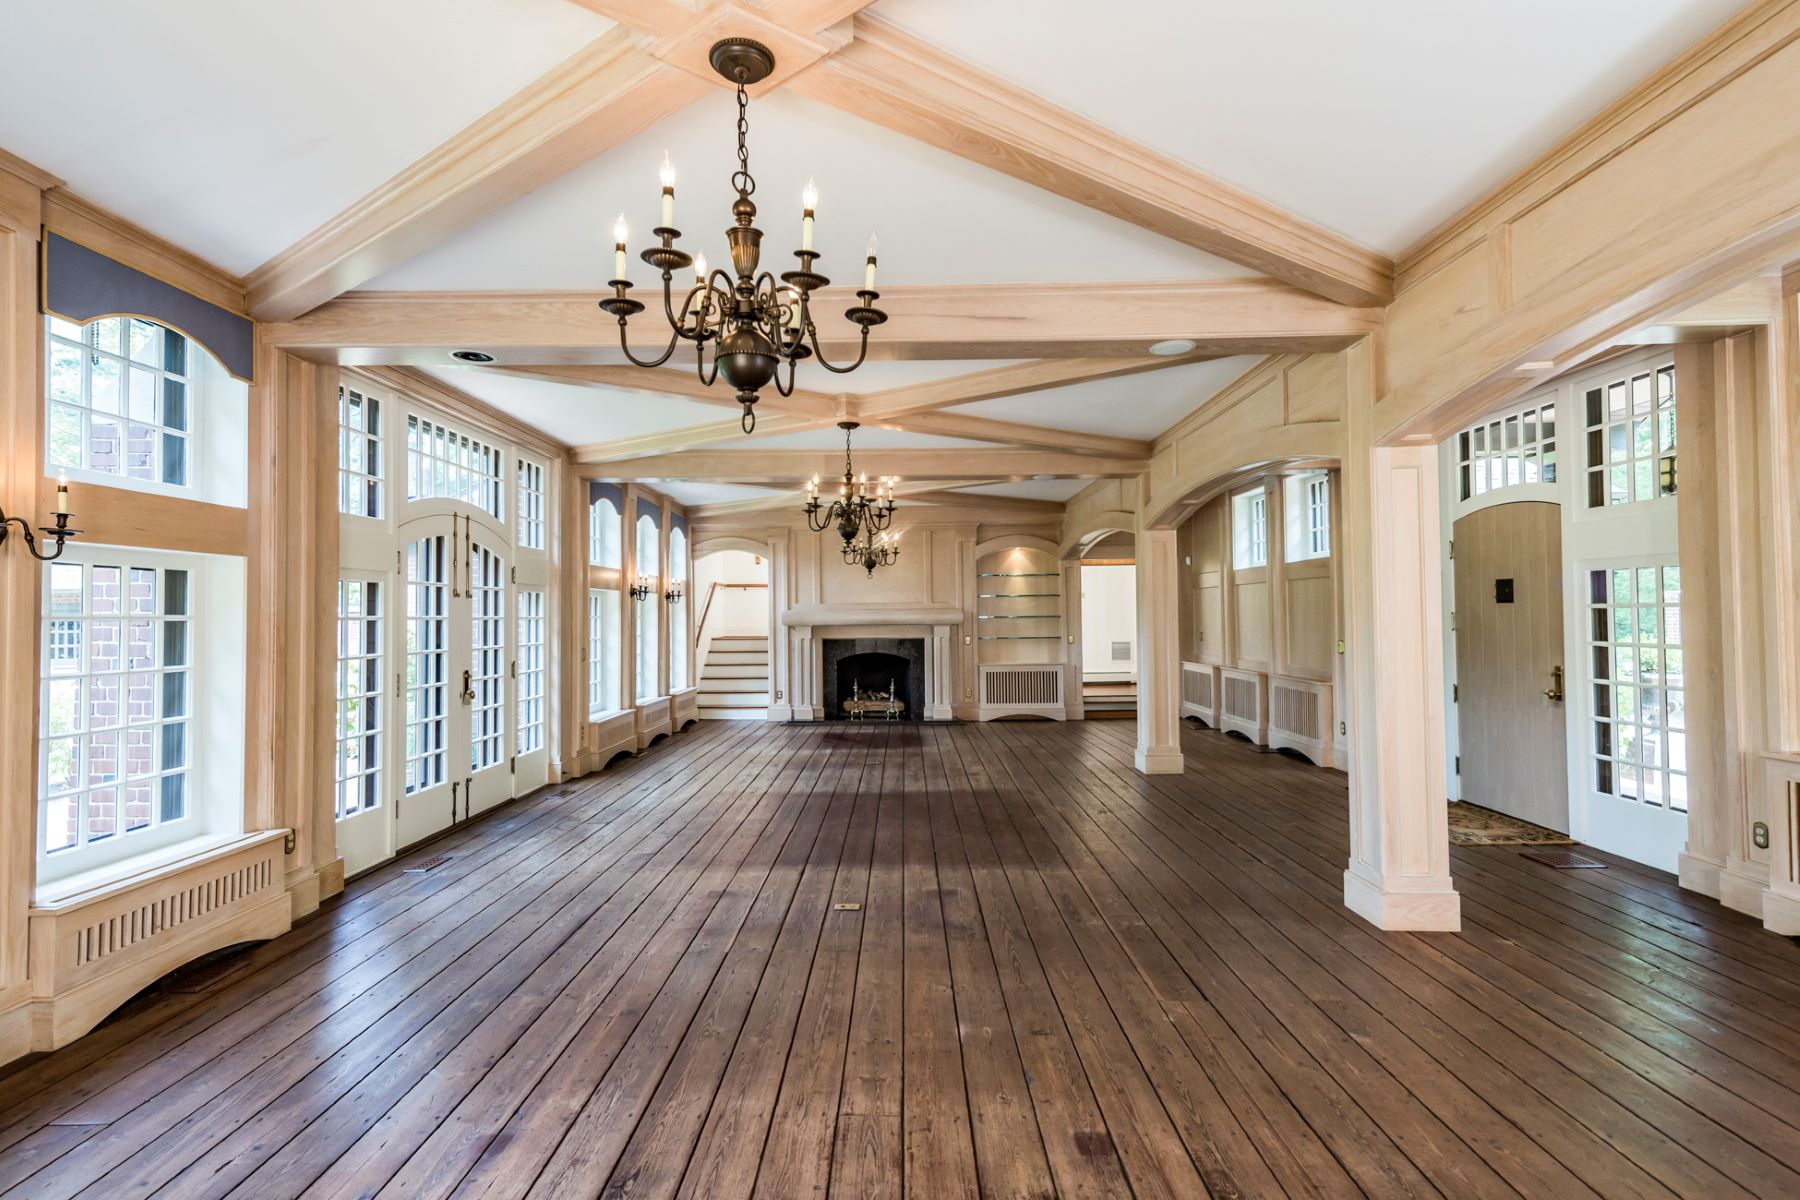 Additional photo for property listing at Historic significance - Restored for the 21st Century 20 Greenhouse Drive, Princeton, New Jersey 08540 United States